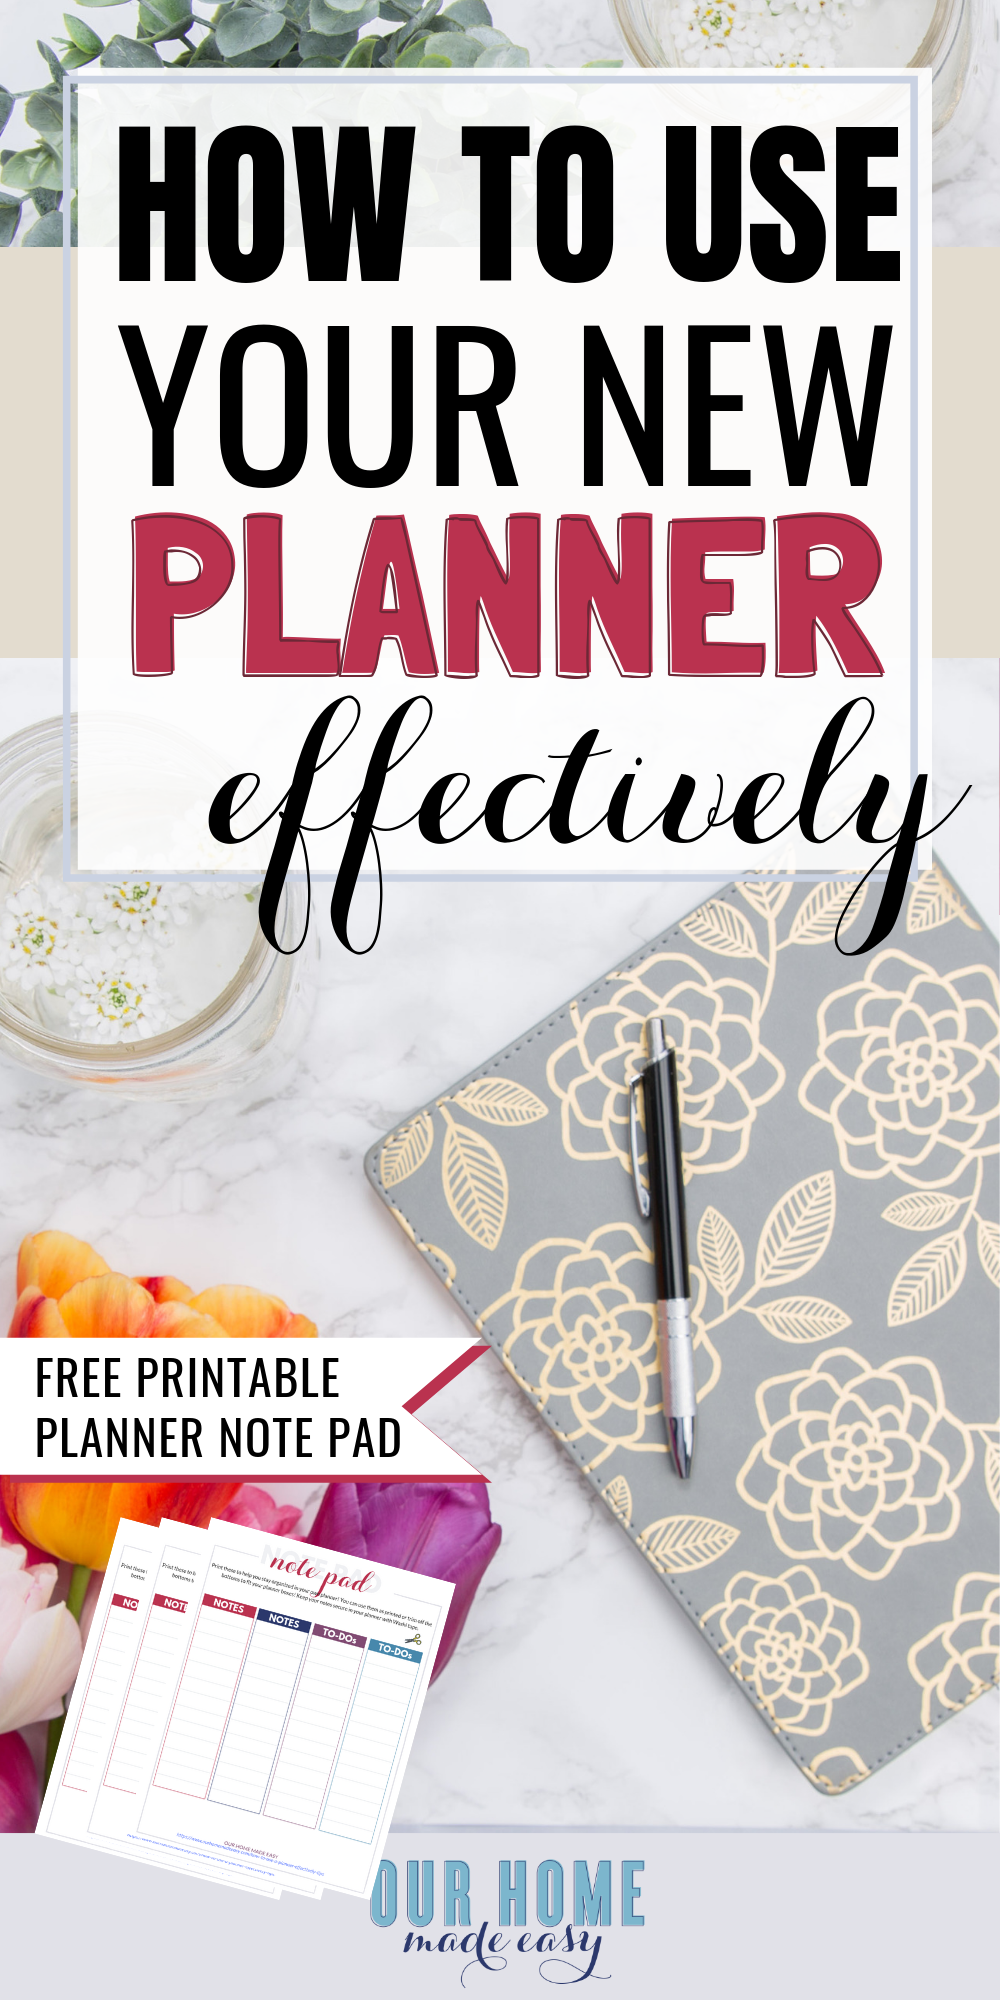 How to Use a Planner Effectively: Pro-tips from a pro-planner to make the most use out of your new planner!